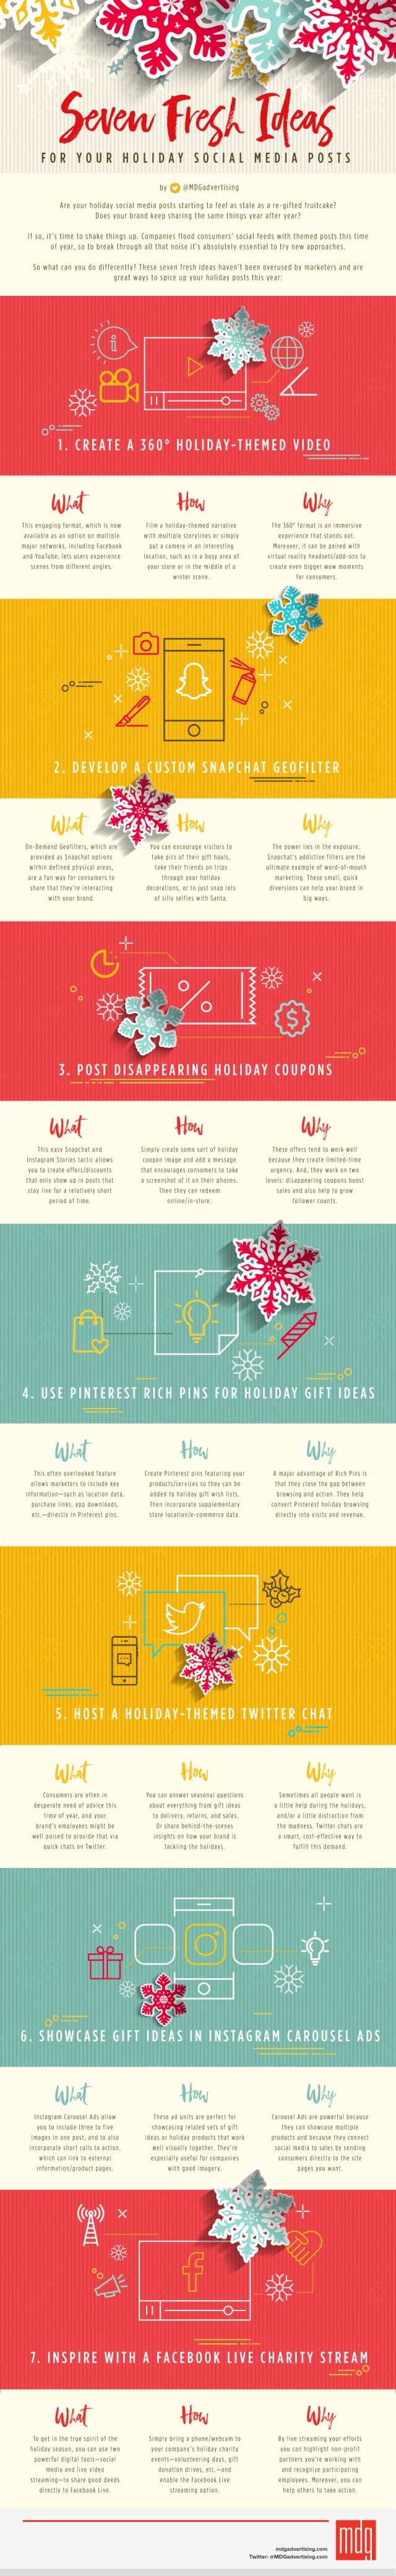 christmas-is-coming-7-fantastic-ideas-for-festive-social-media-posts